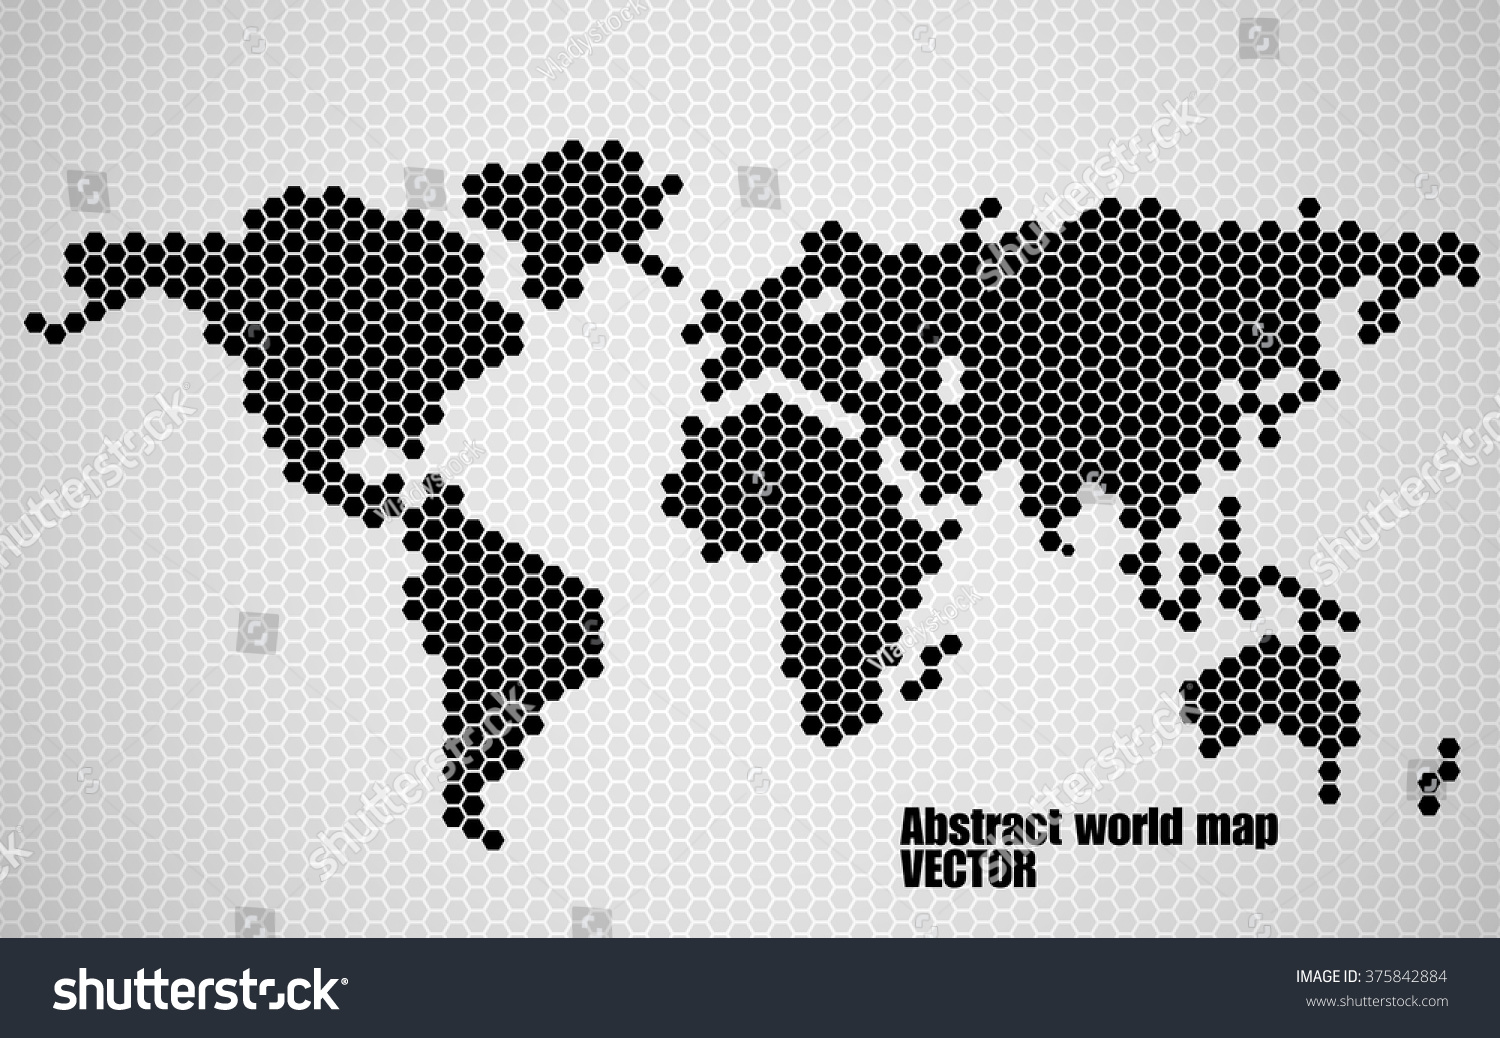 Abstract world map hexagons vector illustration stock vector abstract world map of hexagons vector illustration eps 10 gumiabroncs Gallery